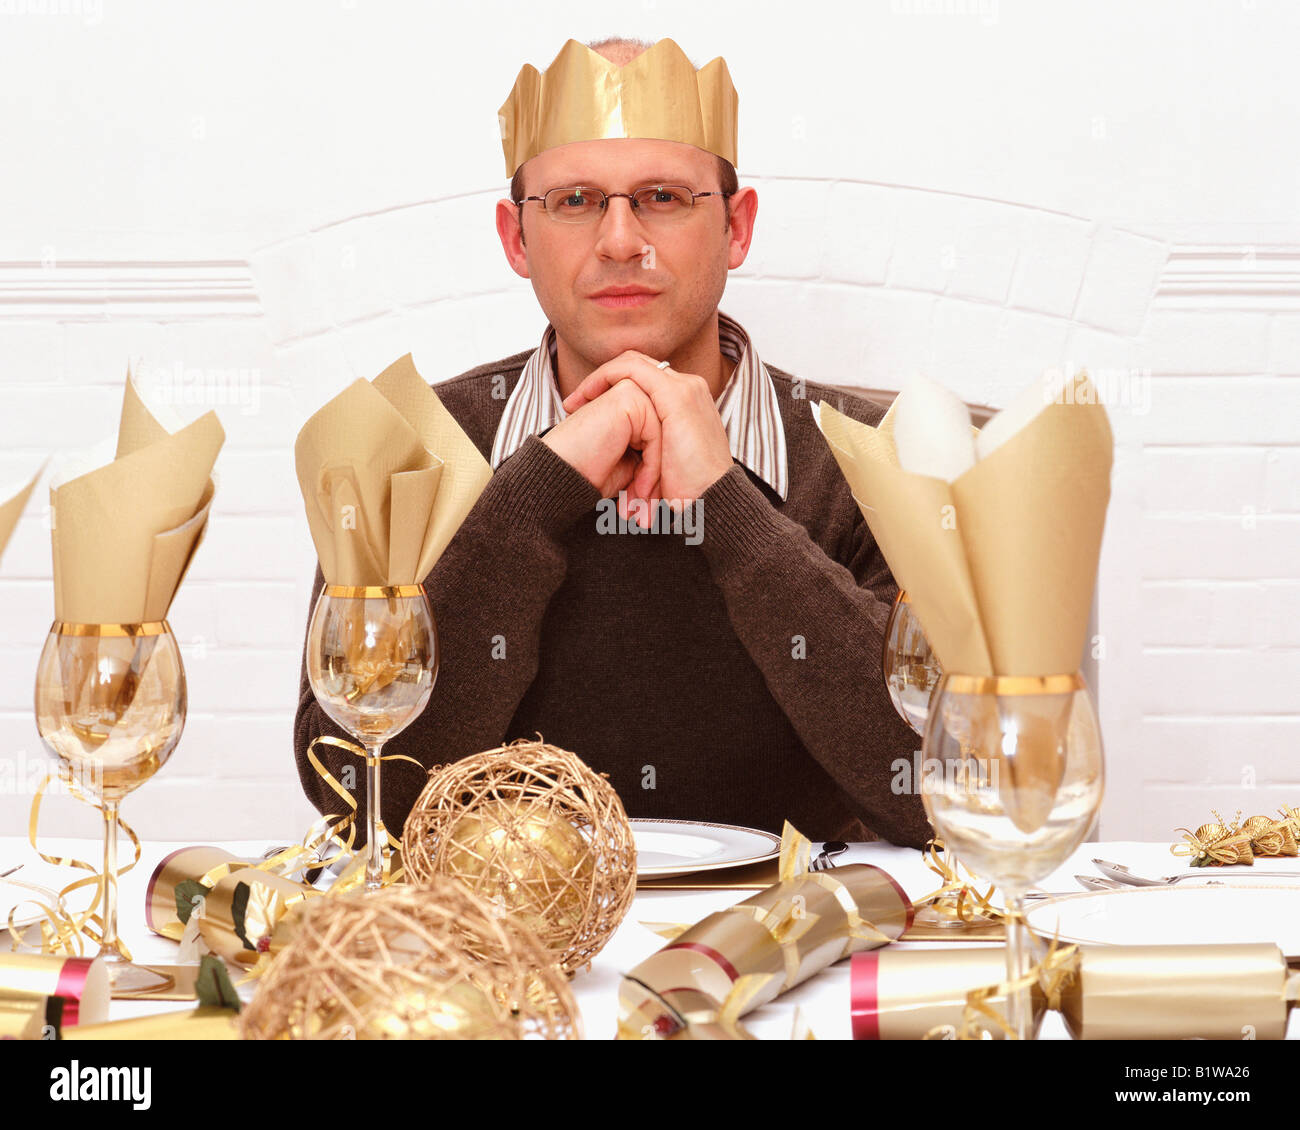 Dad At Christmas Dinner Table Stock Photo Royalty Free